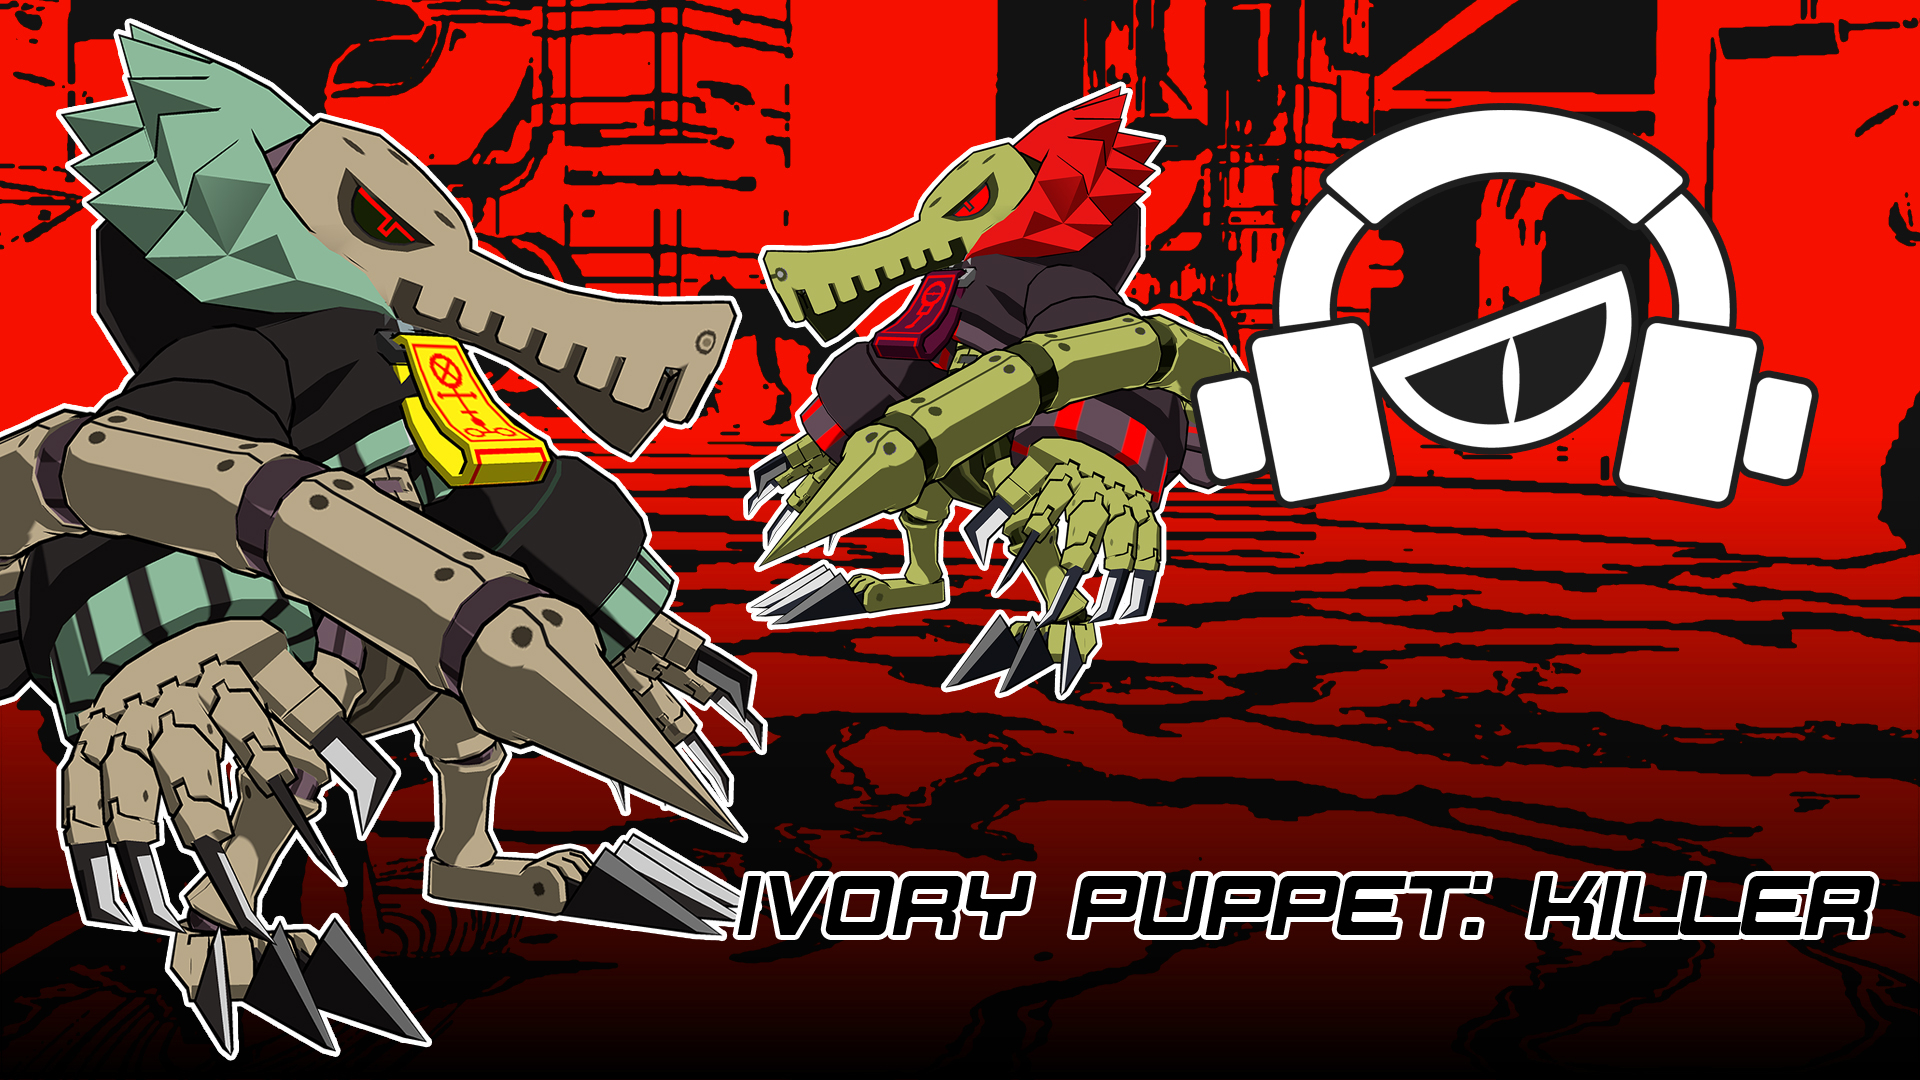 Ivory Puppet: Killer outfit for Latch